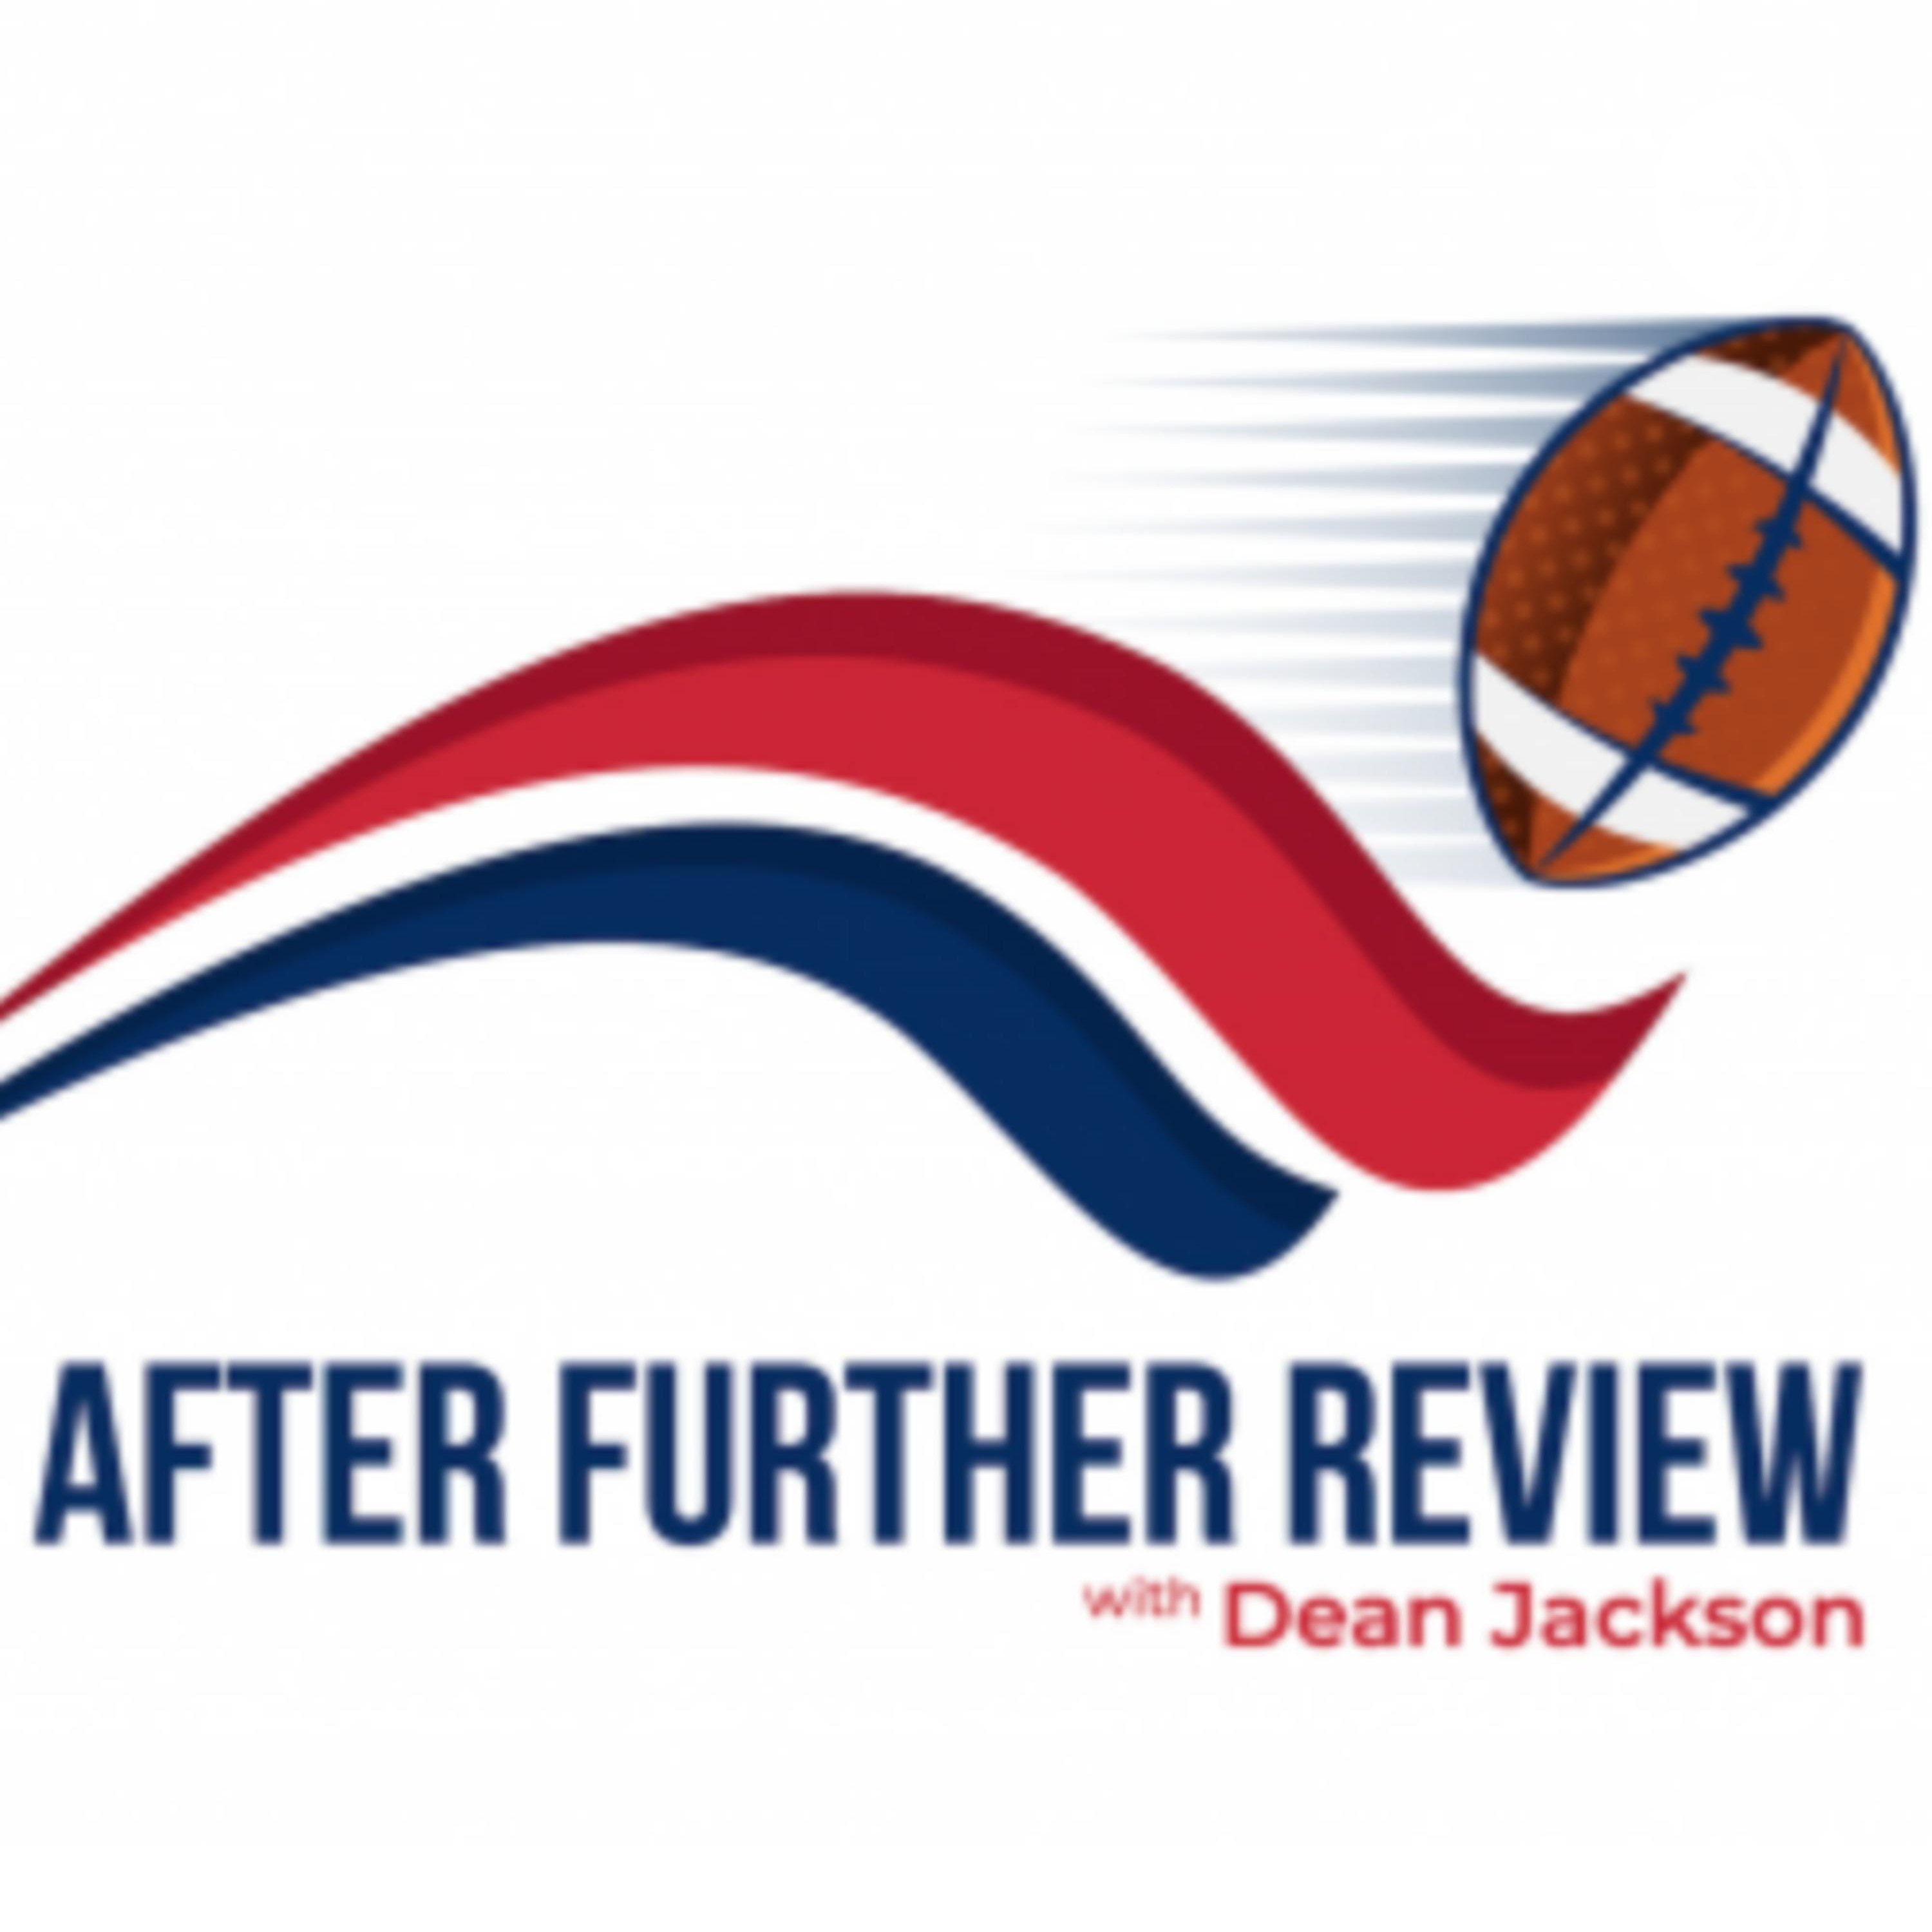 AAF: After Further Review on Apple Podcasts